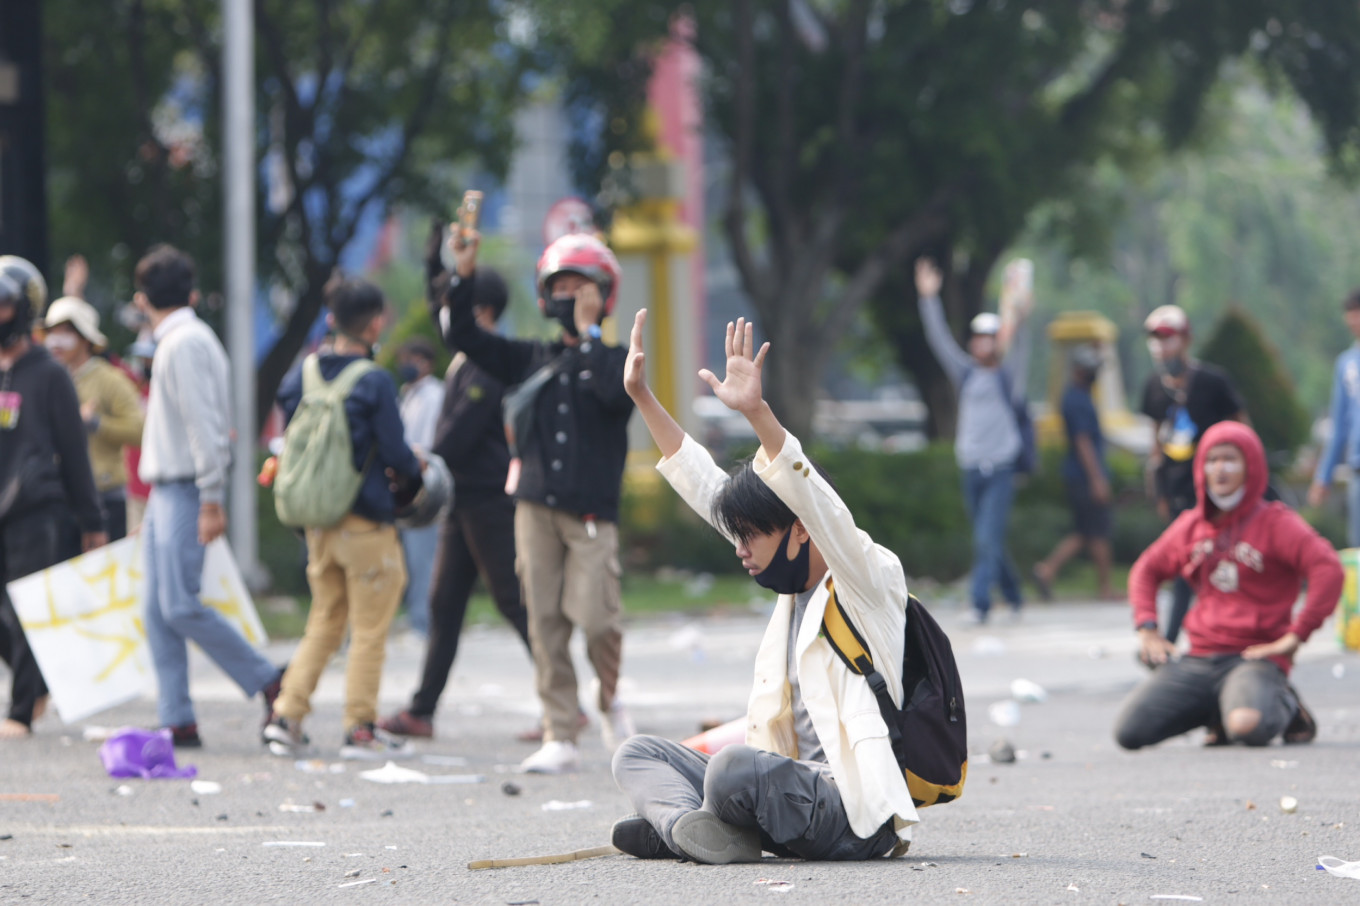 No violence: A protester holds up his arms while sitting in a road during a protest on Thursday, october 8. 2020 in Harmoni, Central Jakarta. The demonstration in the historic district descended into violence as a clash broke out between protesters and the police. JP/Wendra Ajistyatama